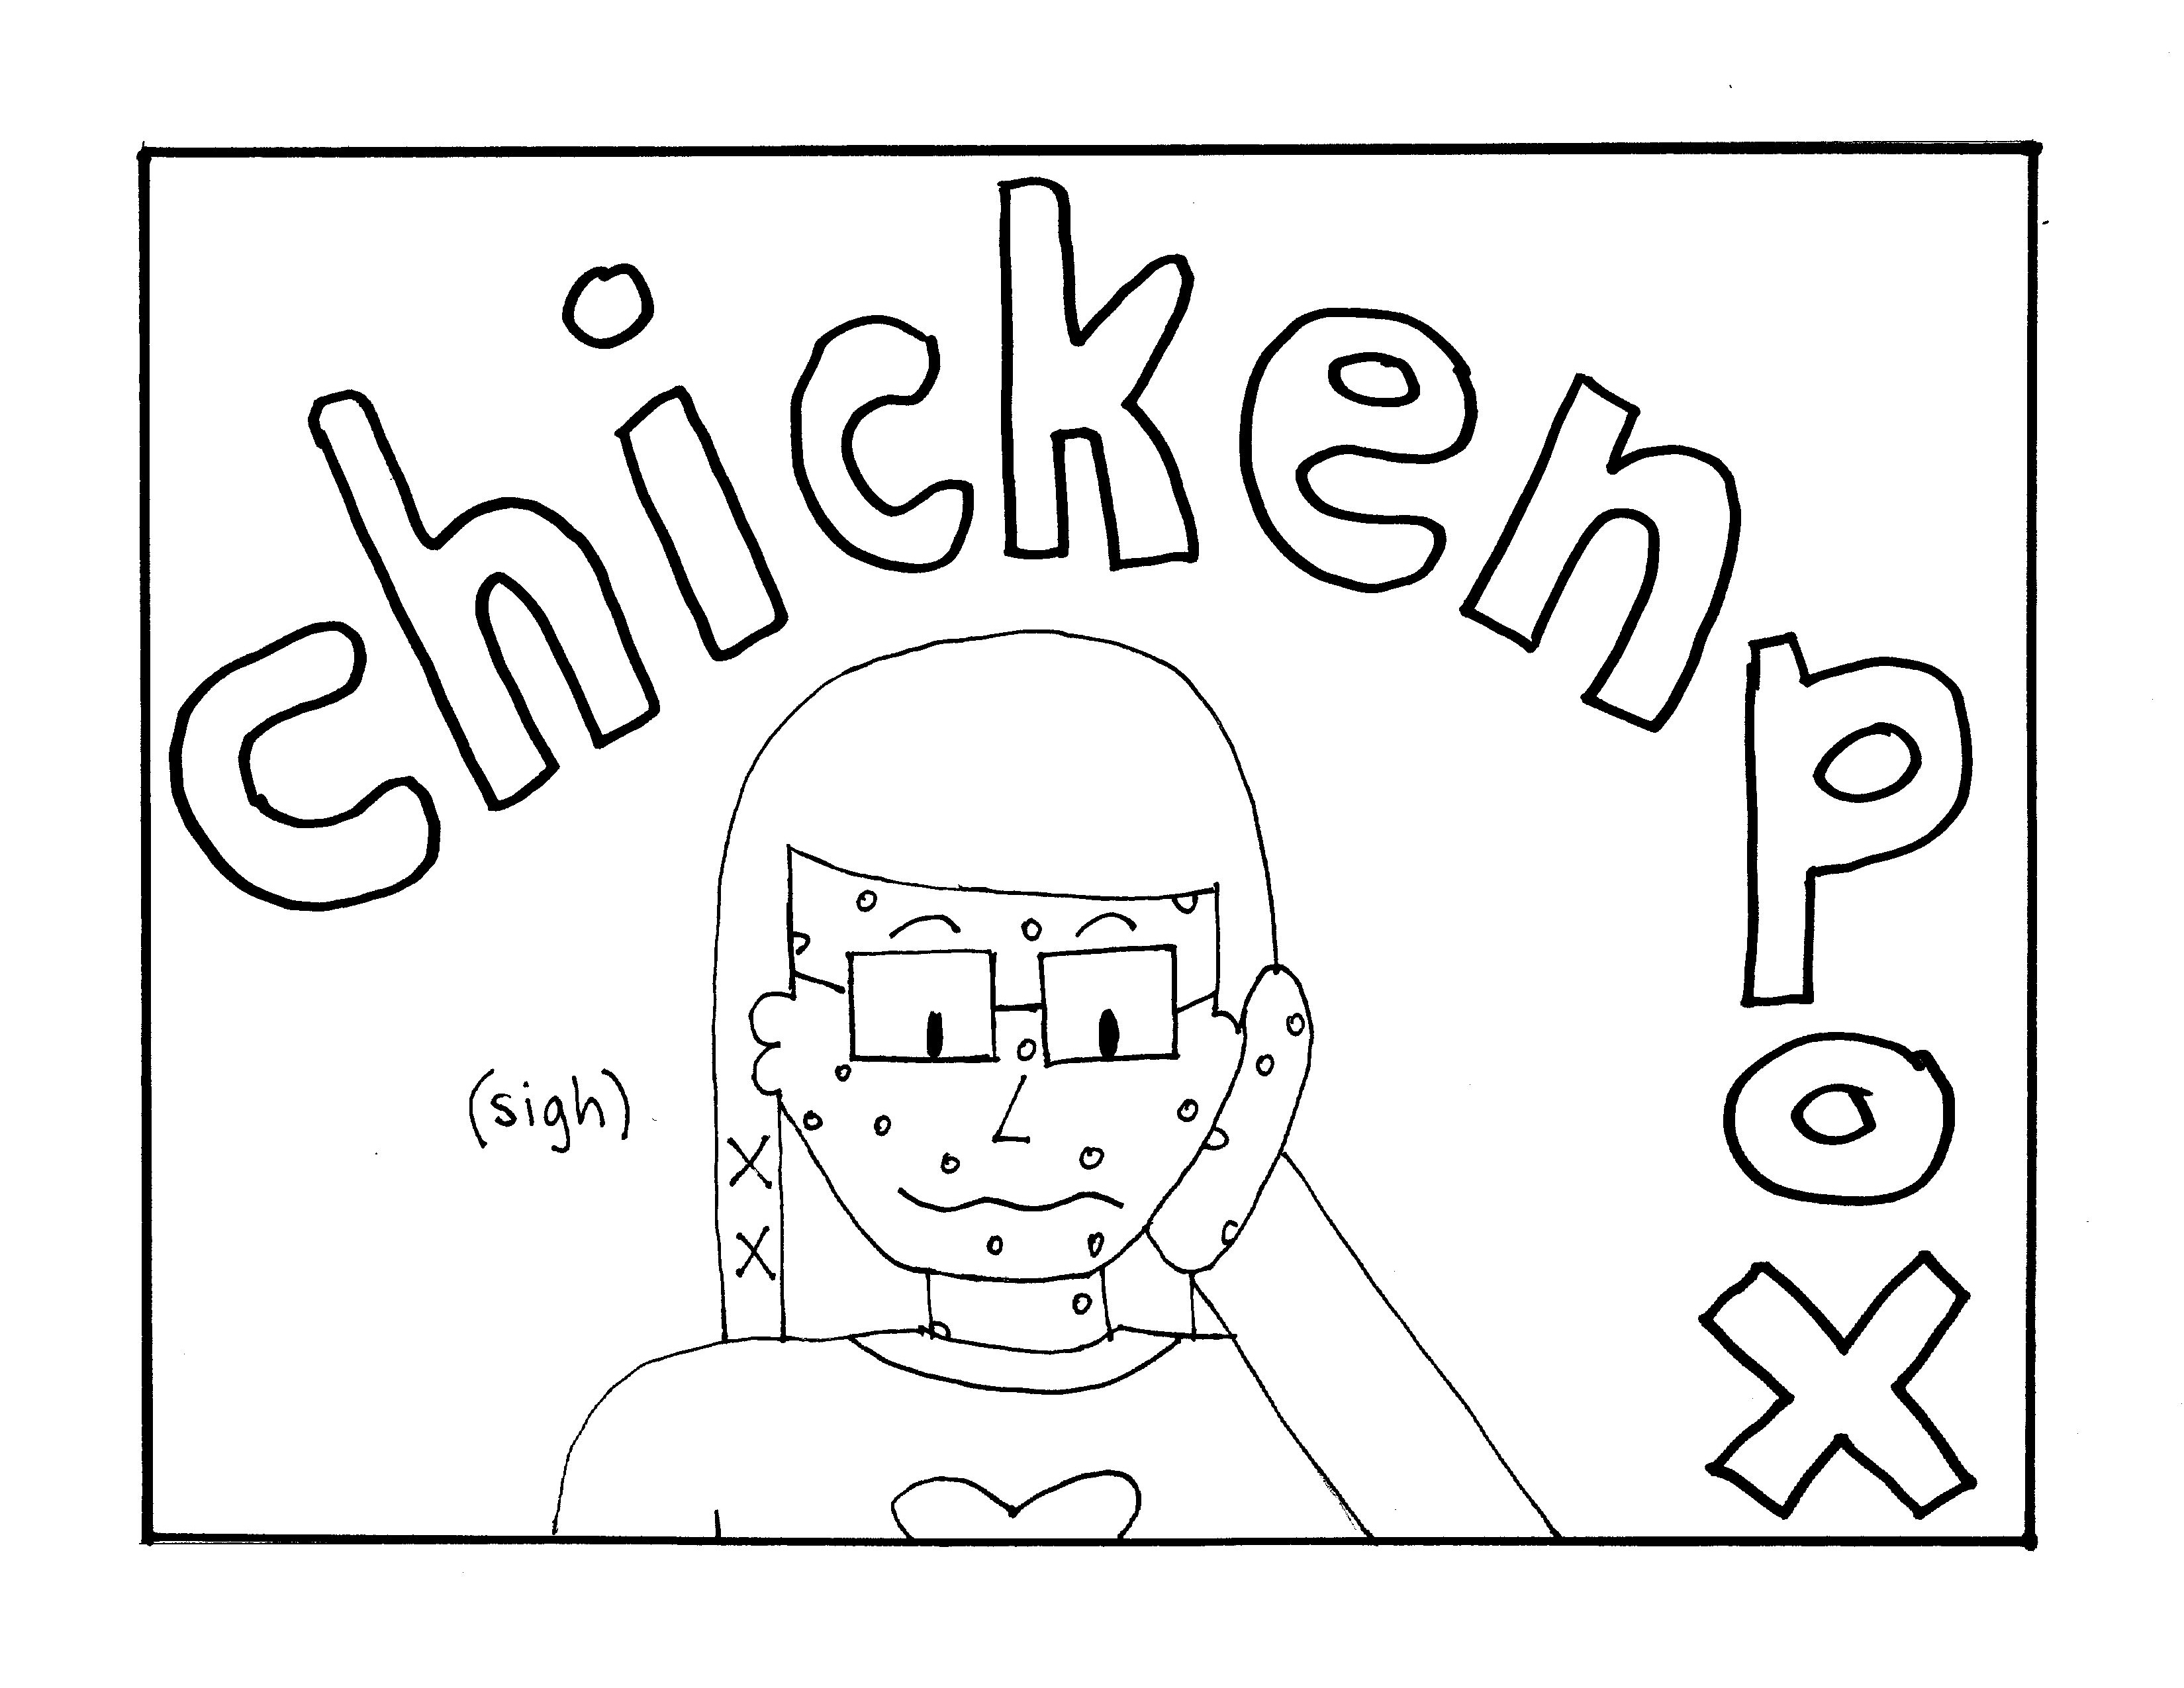 Chicken-pox